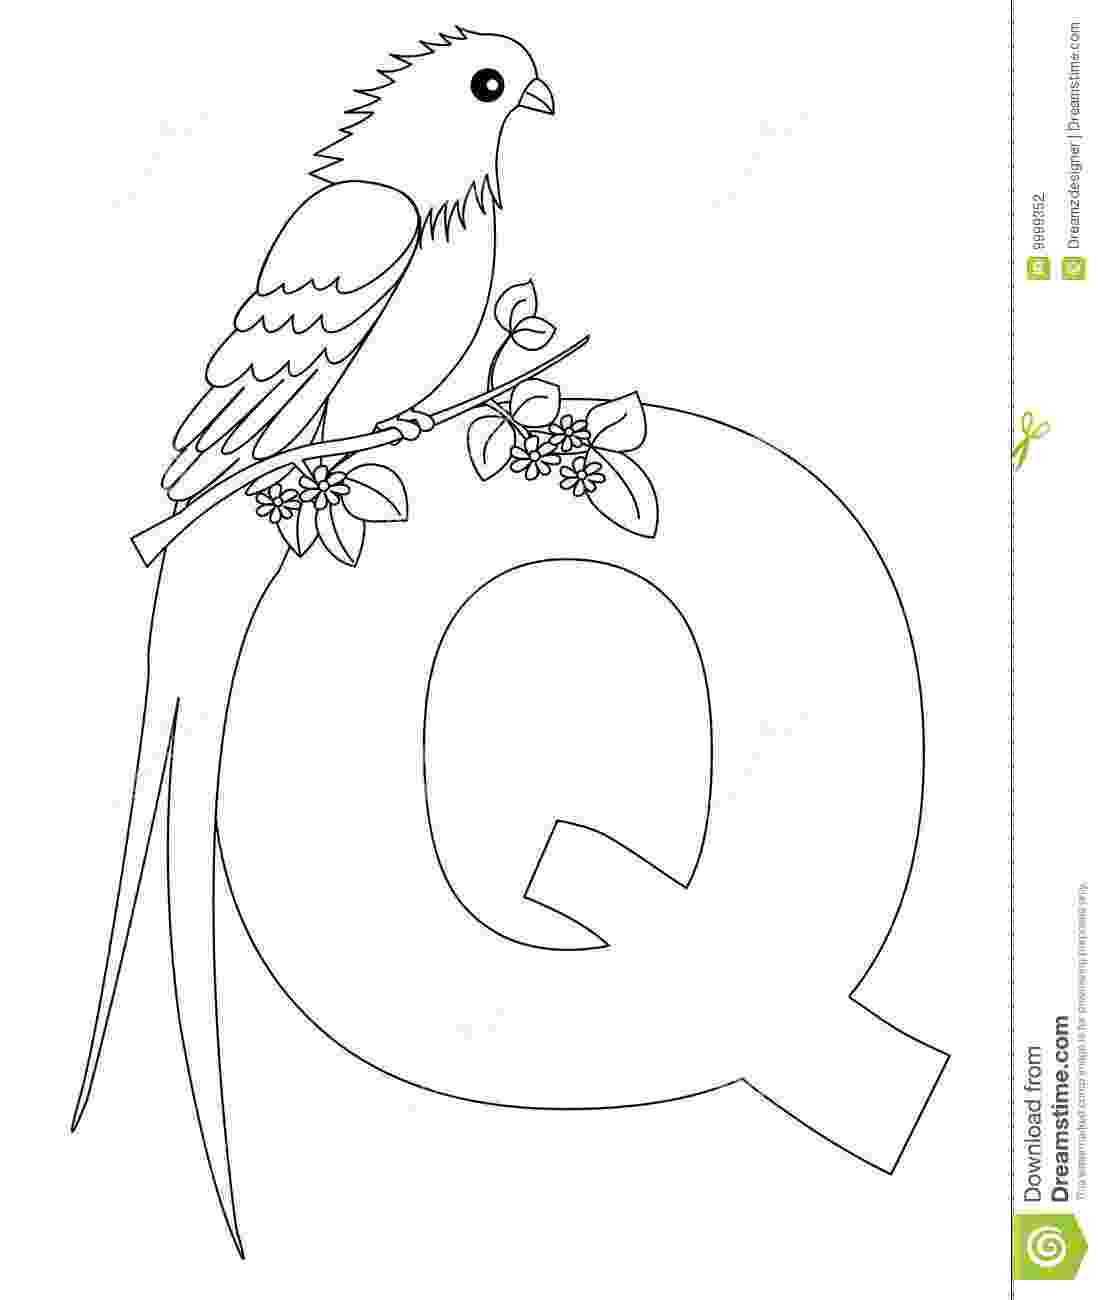 abc coloring book download free printable abc coloring pages for kids abc book download coloring